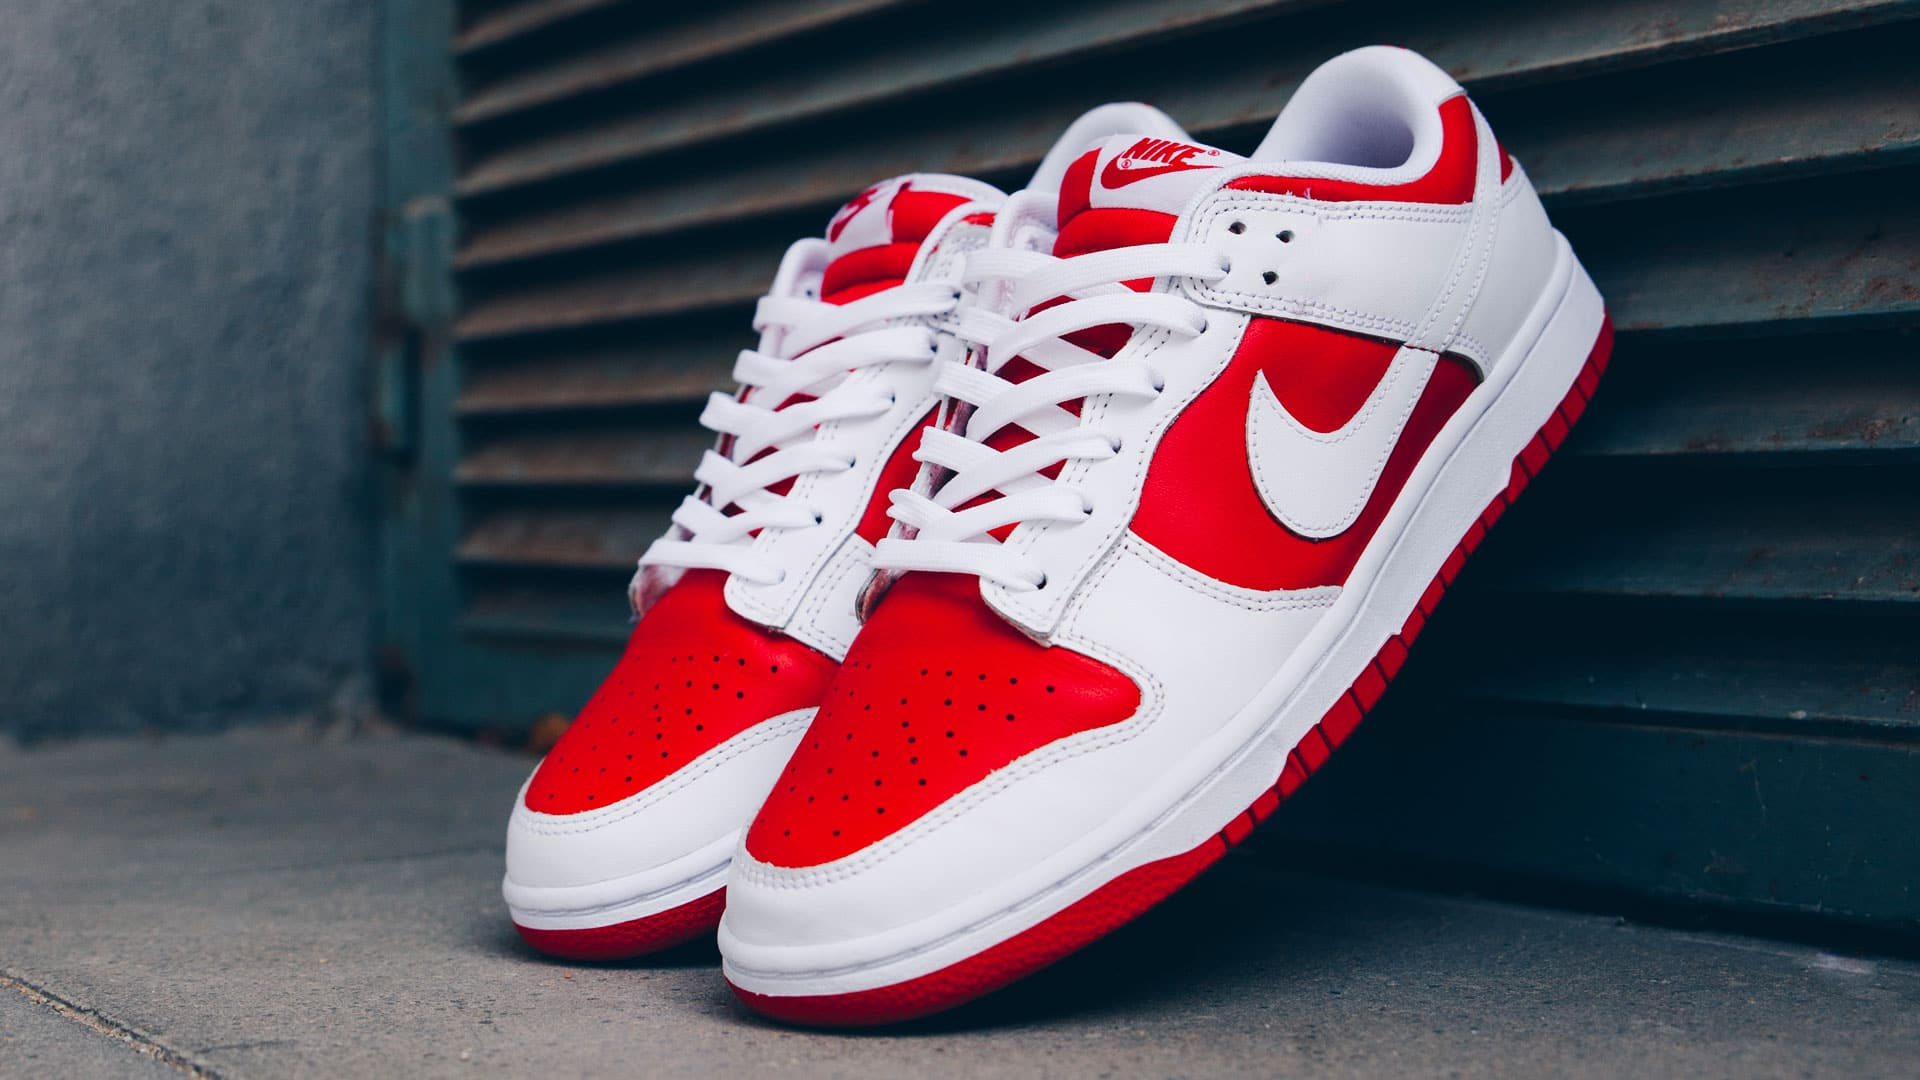 nike dunk low university red dd1391 600 feat